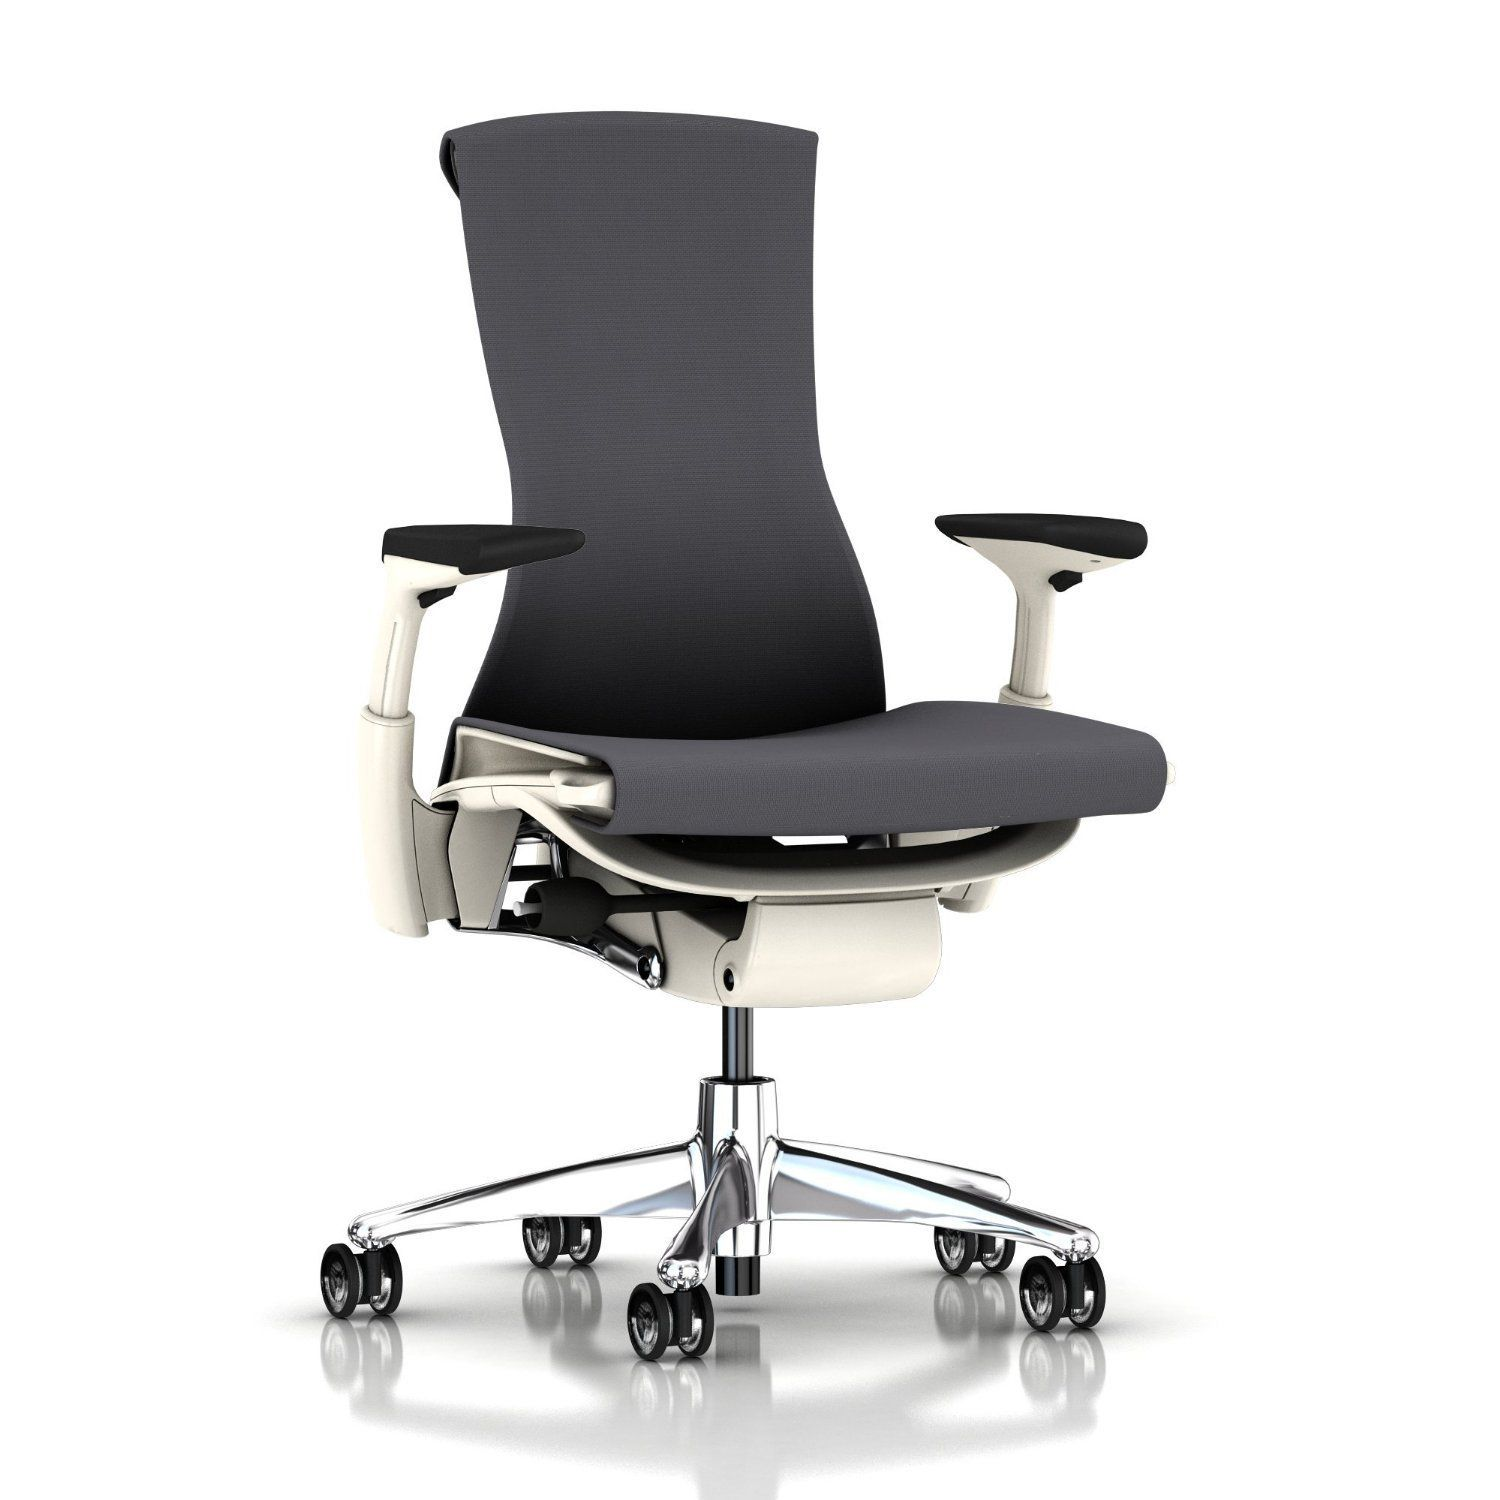 e3b057d3d85 The 7 Best Office Chairs for Back Pain in 2019